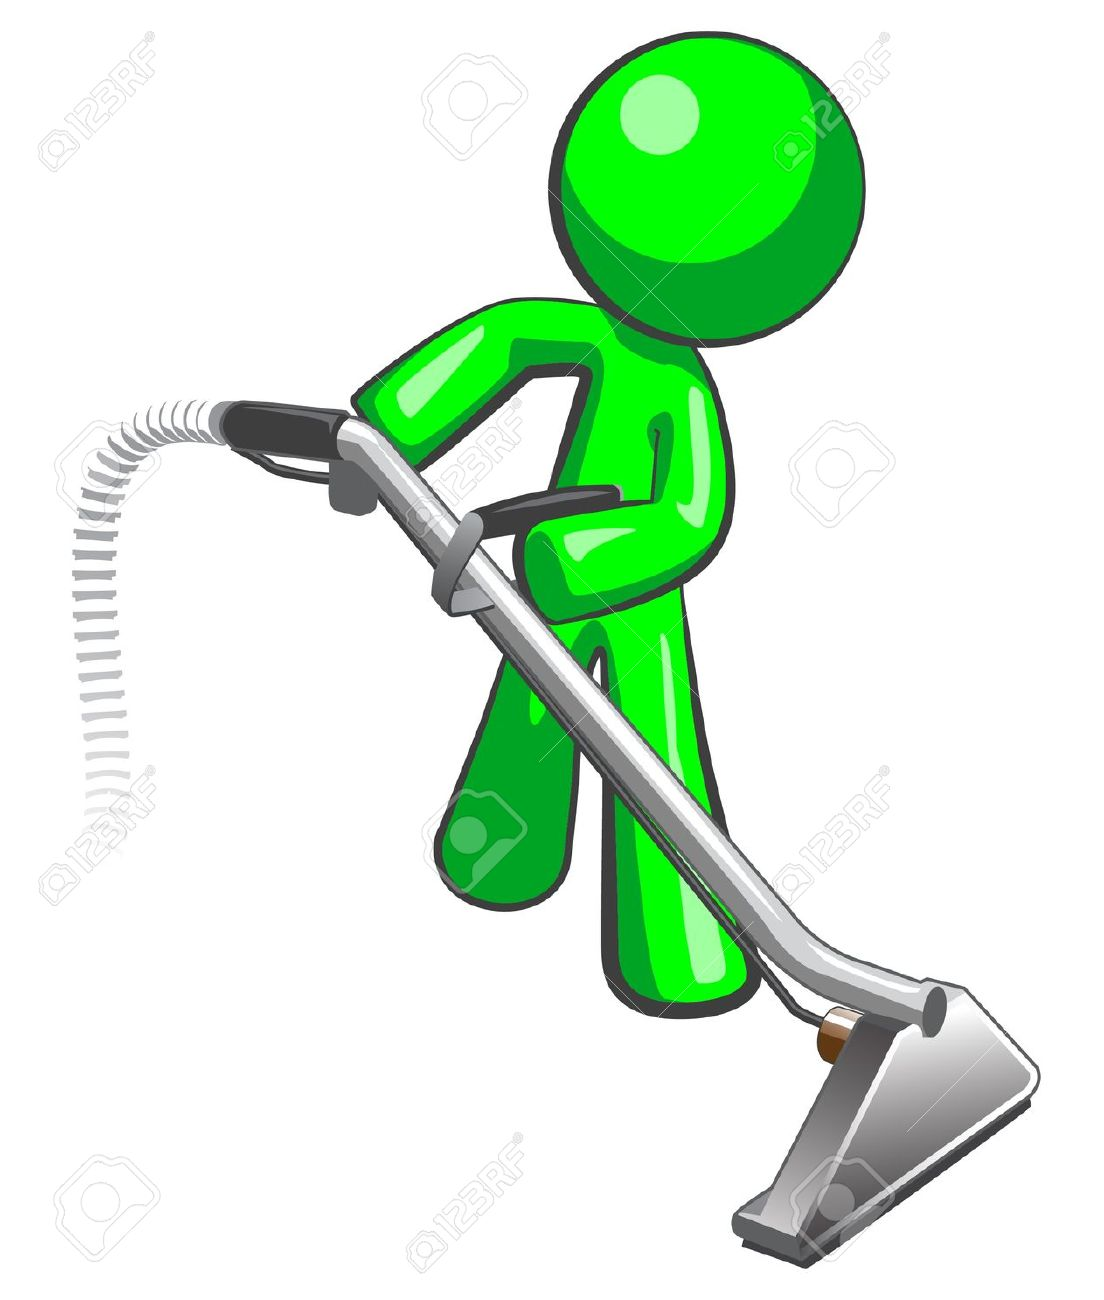 Cleaner. Royalty Free Stock Photography - Image: 16841637 |Carpet Clean Cartoon